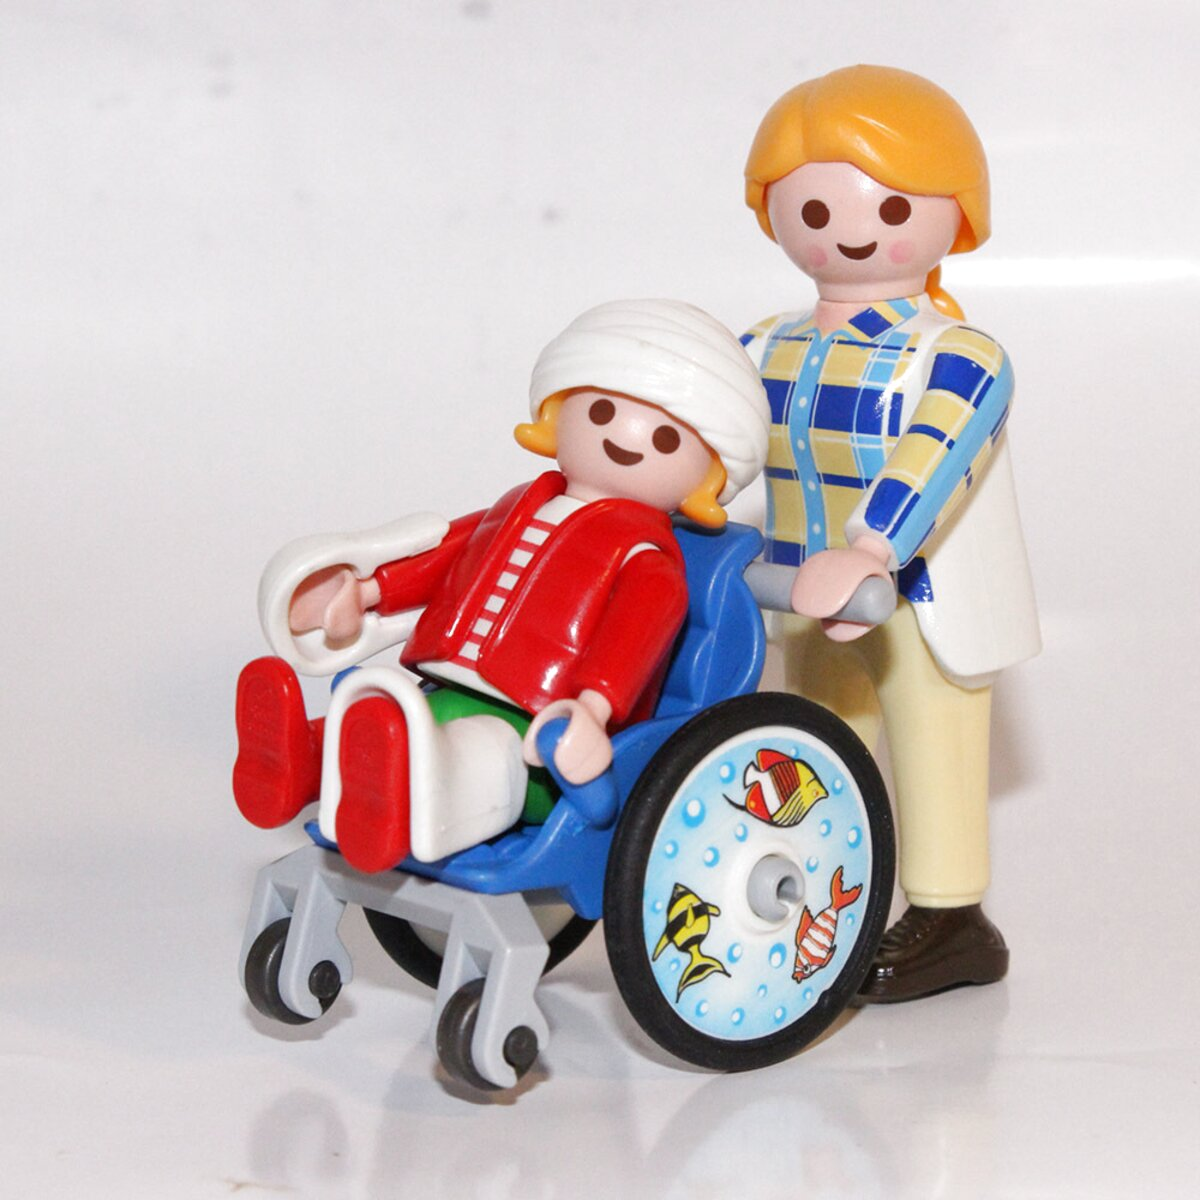 playmobil fauteuil roulant d'occasion